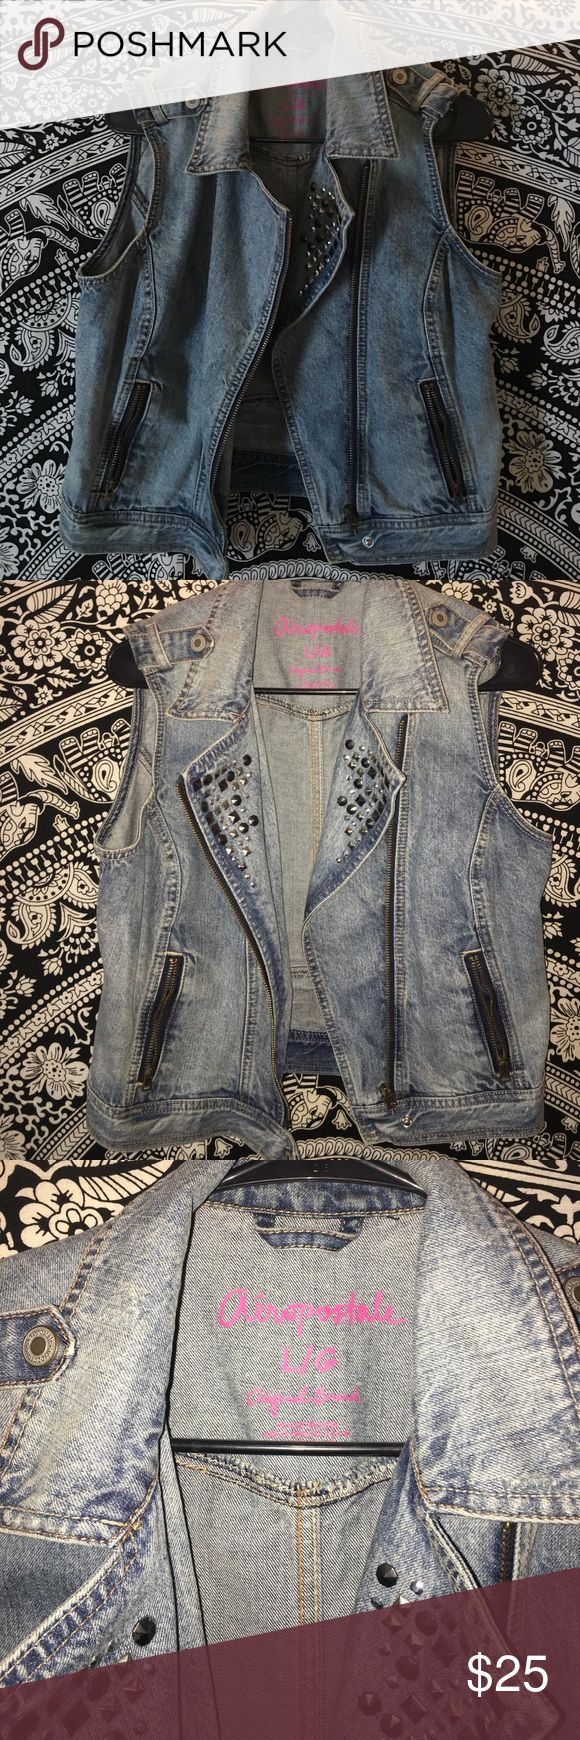 Studded Denim Vest Beautiful denim vest from Aeropostale with light and dark silver studs on the front. Zipper pockets. Aeropostale Jackets & Coats Jean Jackets